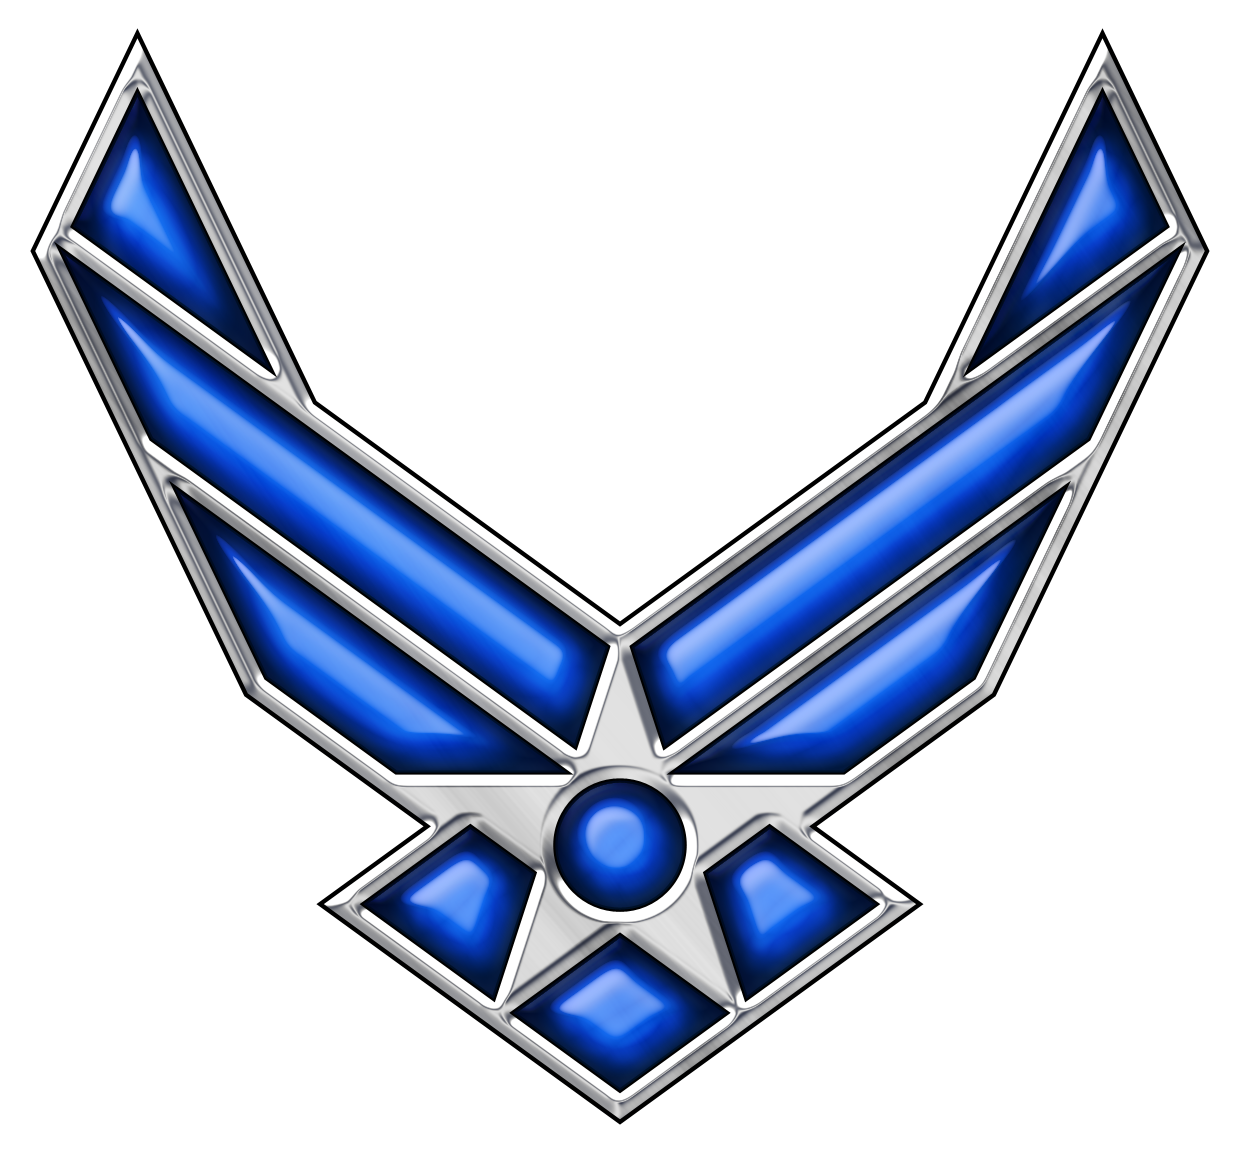 Air Force Logo Clip Art Pictures to Pin on Pinterest ...